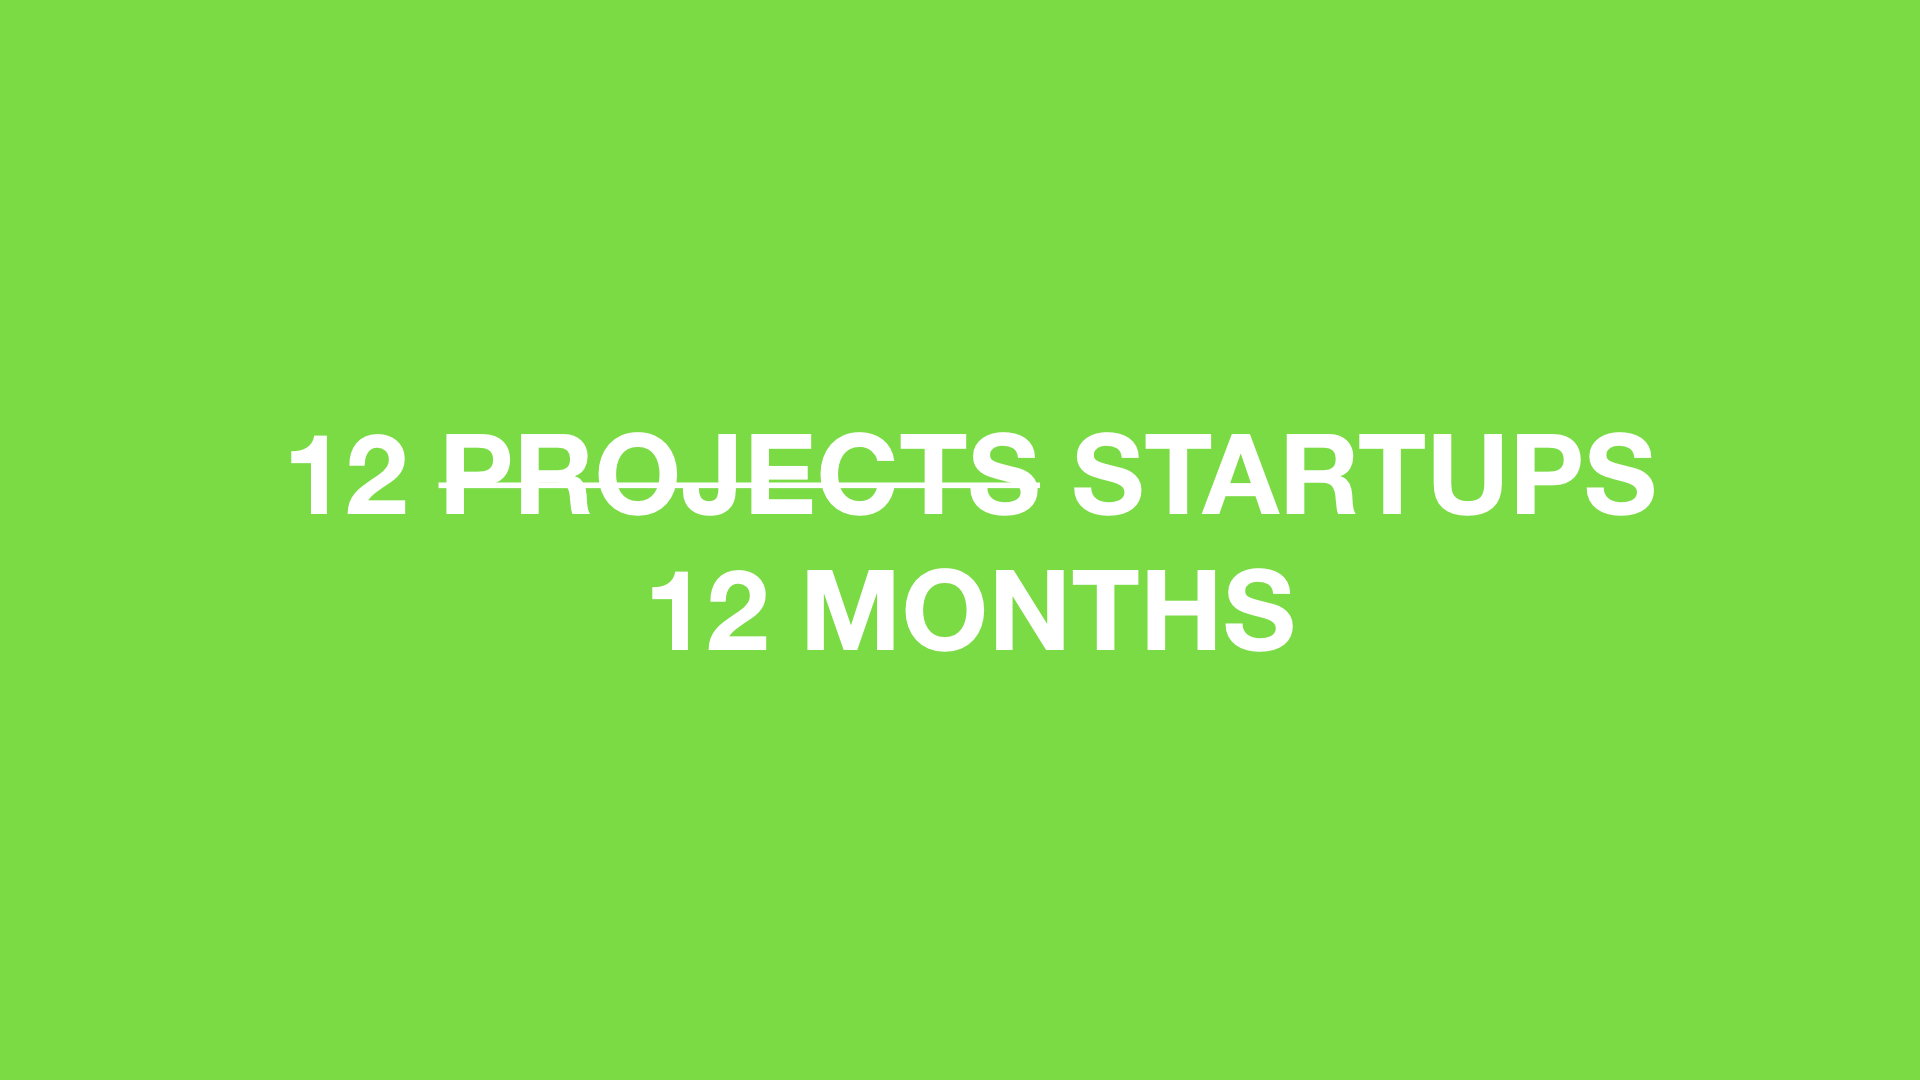 bootstrapping-startups-to-profit-026